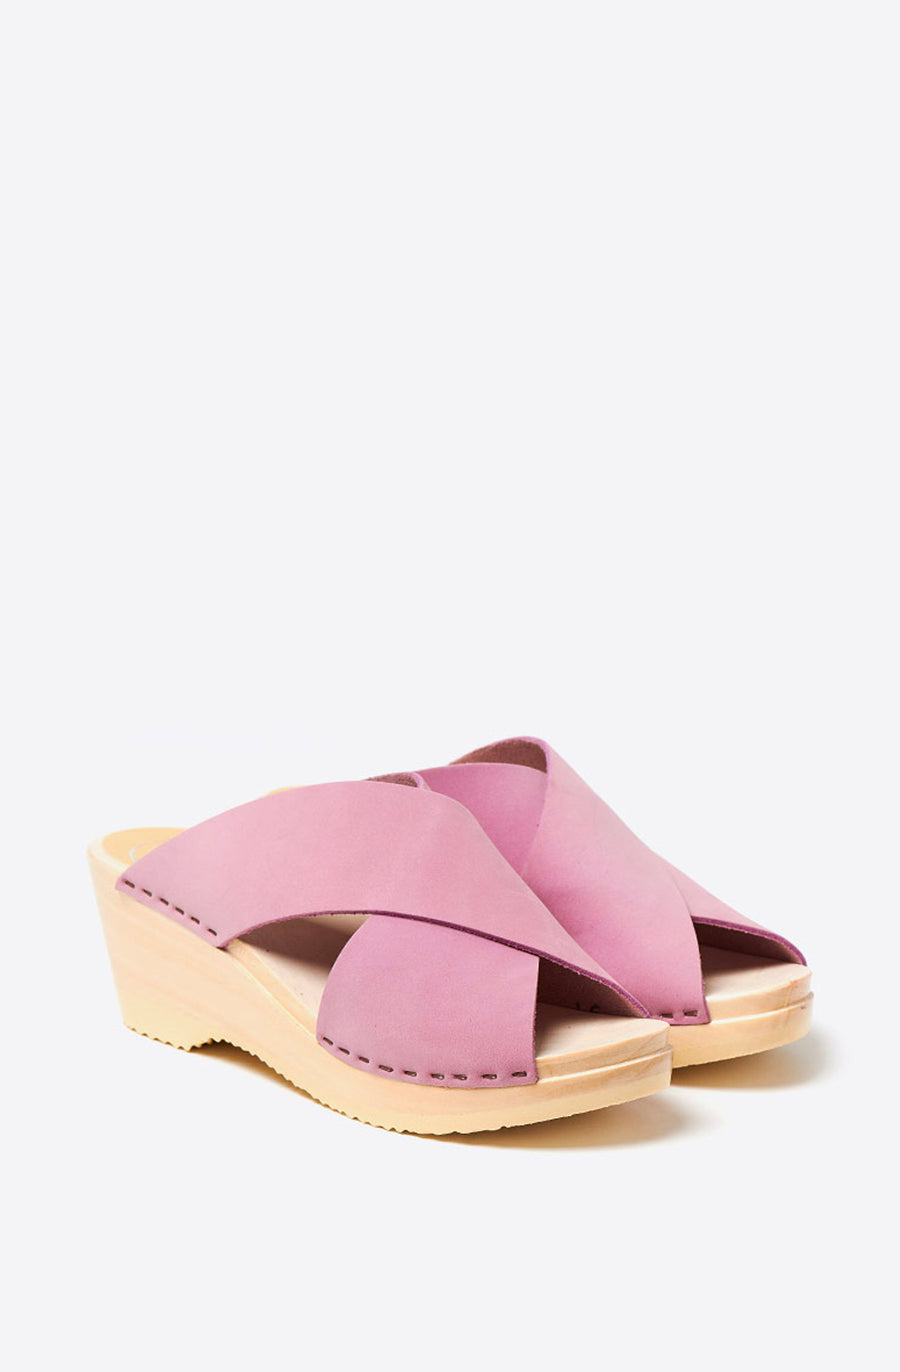 Frida Mid Wedge Clog-violet on white base